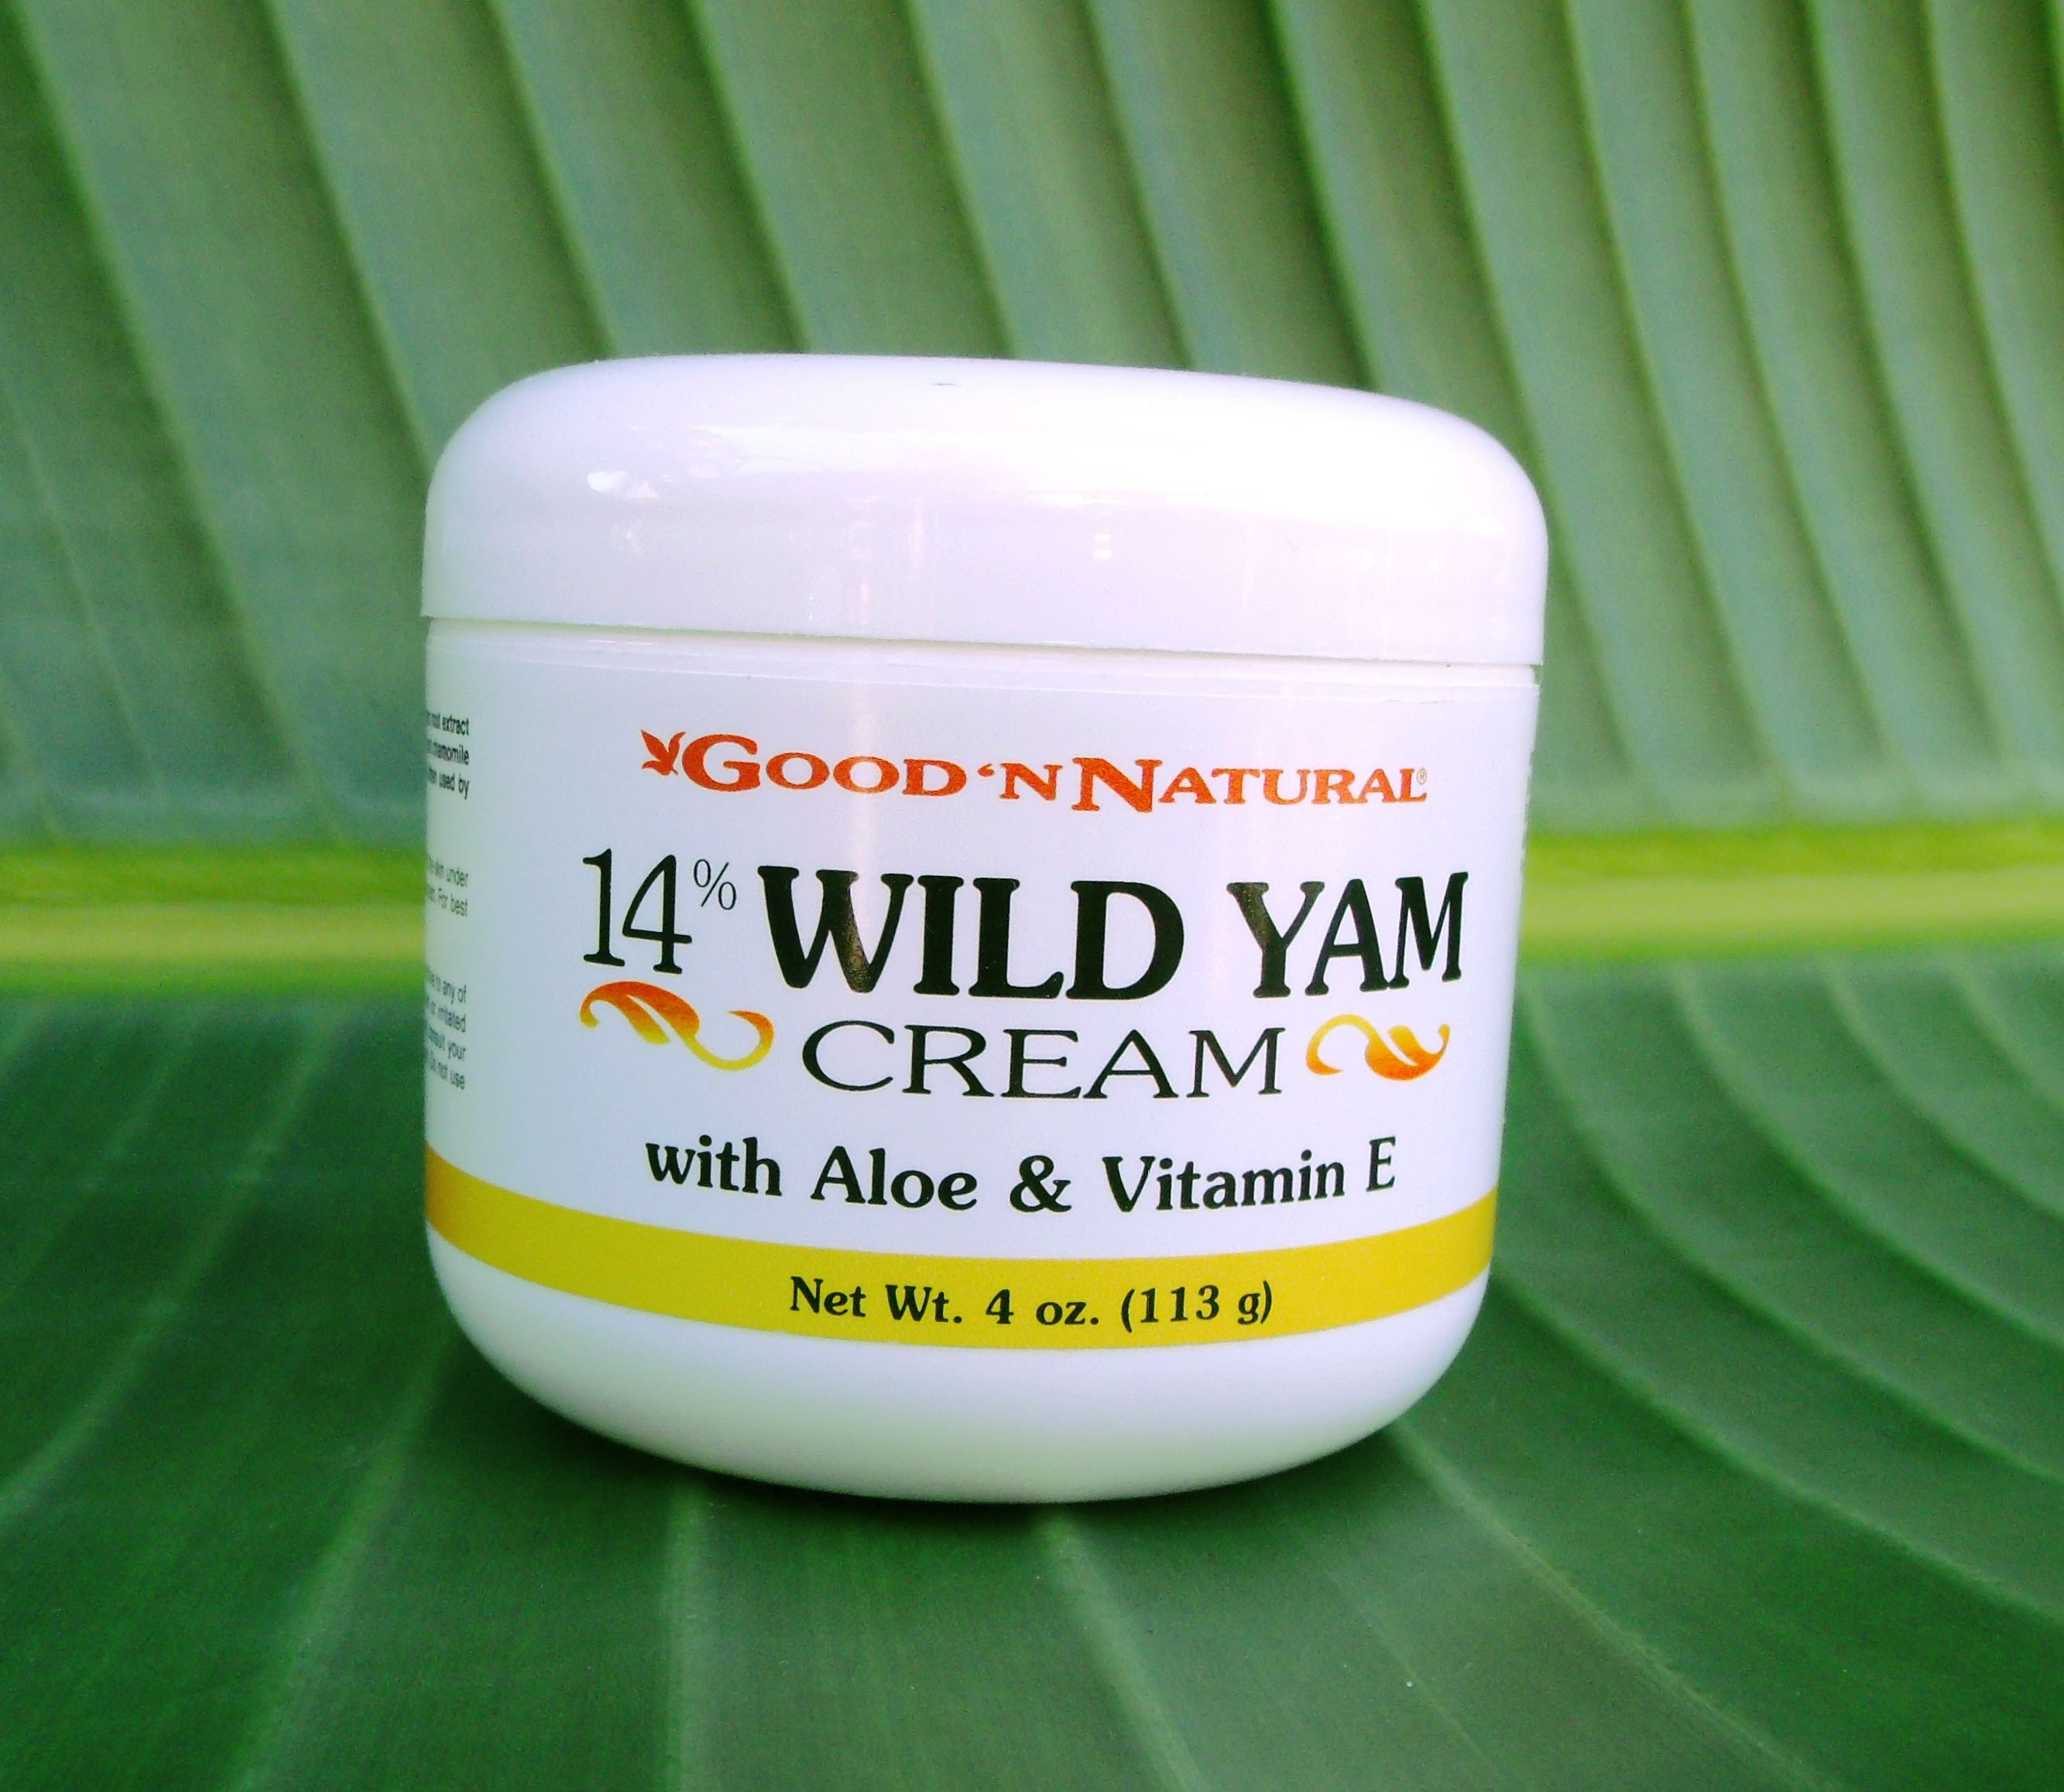 Wild Yam Cream Skin & Body Care - 4oz